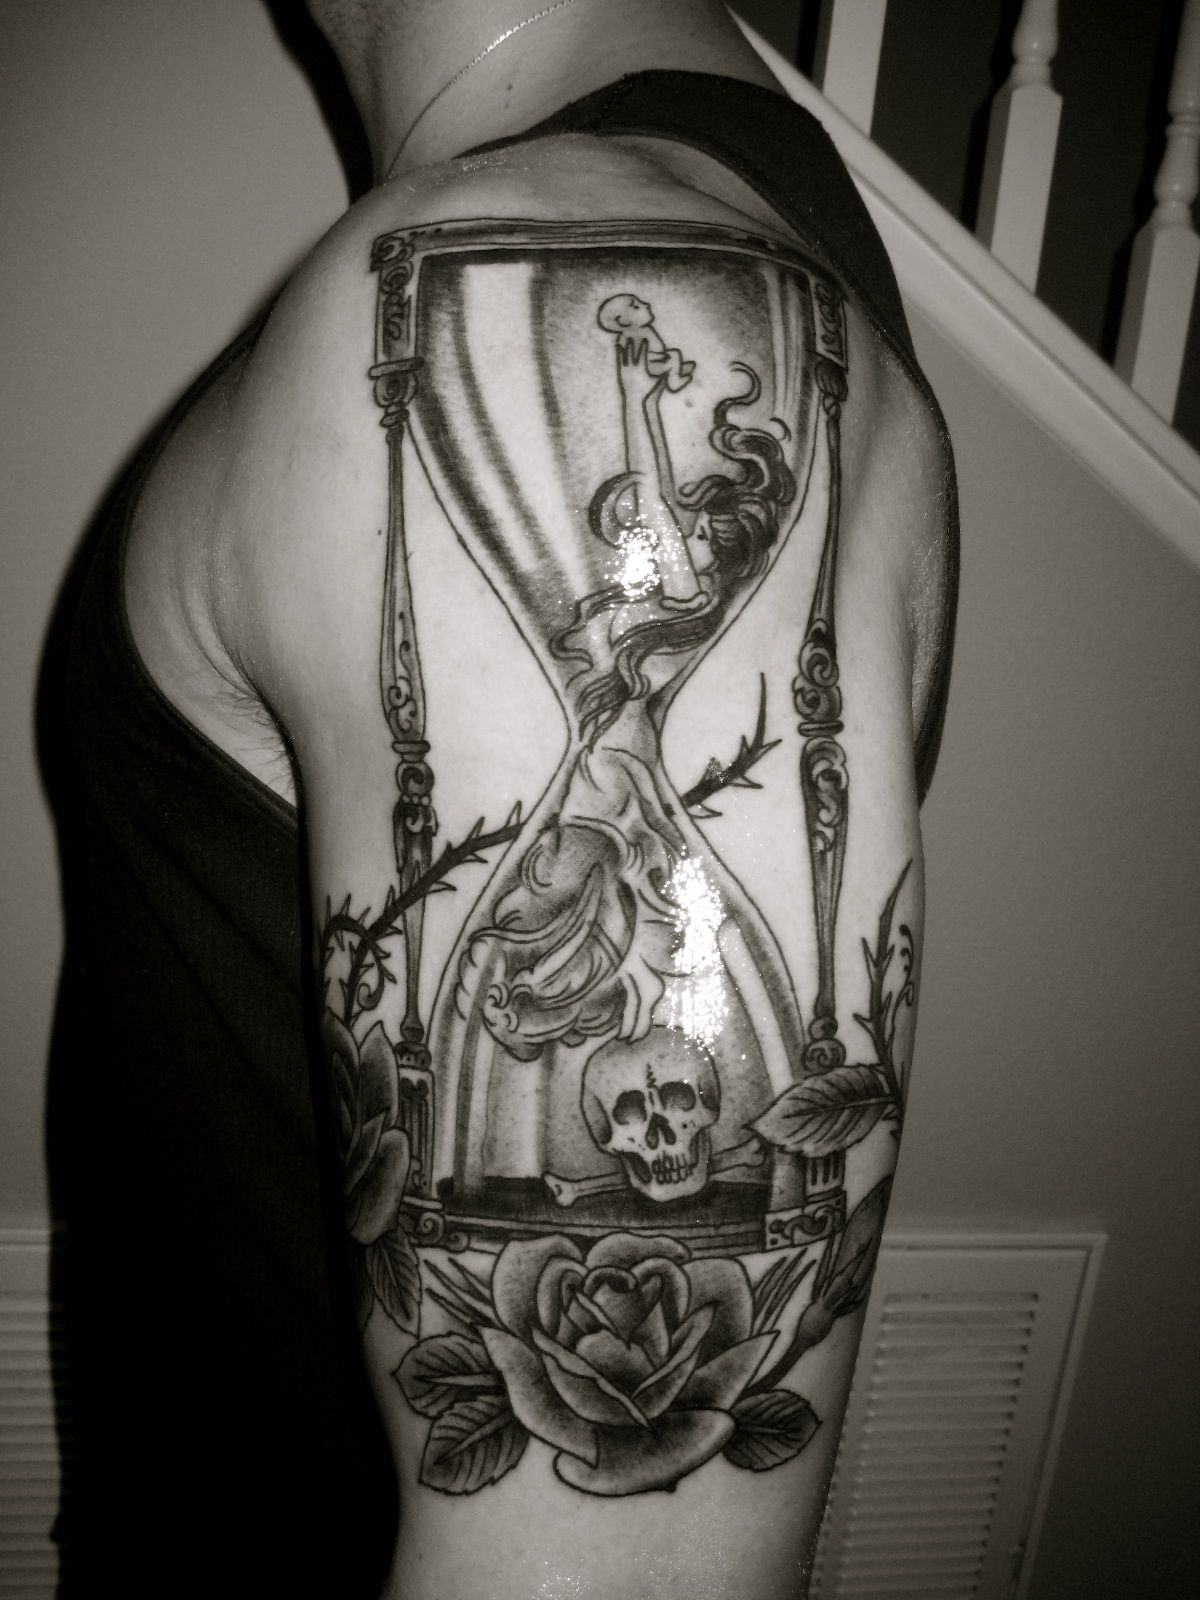 Sand clock tattoo designs  Important Meanings Behind the Hourglass Tattoo | Hourglass tattoo ...